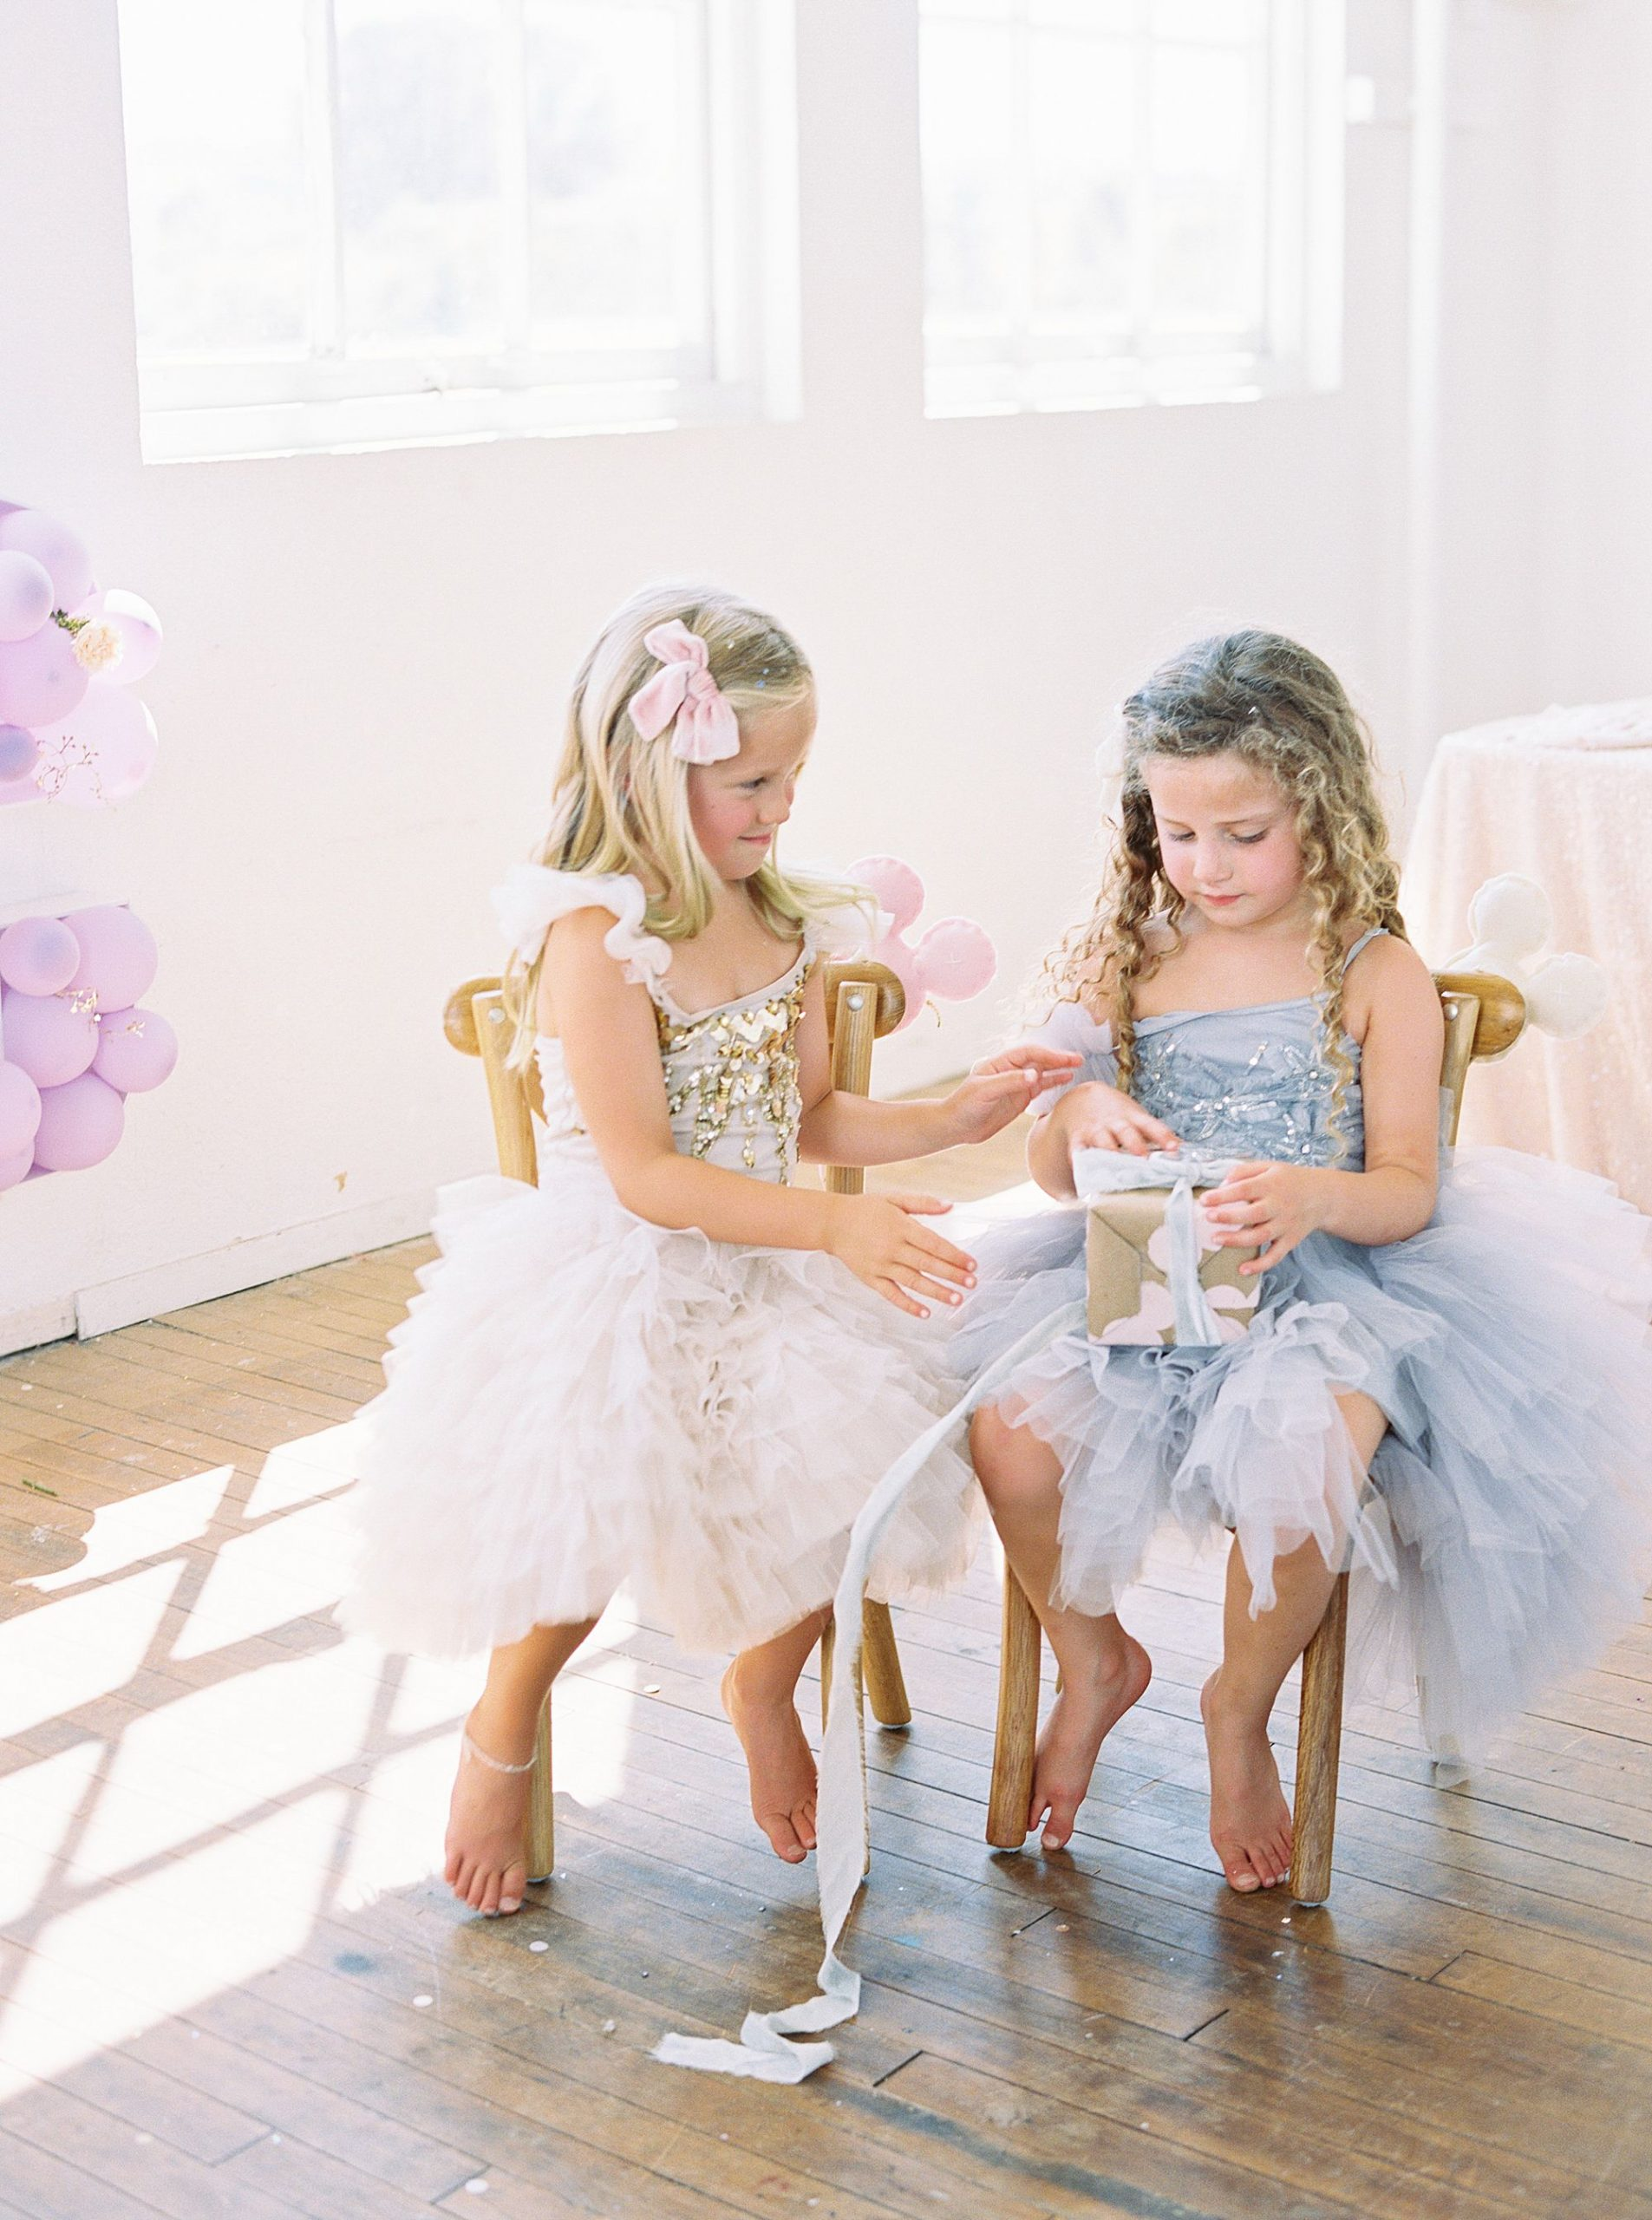 Vintage Disney Birthday Party for Princess Nora's Fourth Birthday - Featured on 100 Layer Cake - Ashley Baumgartner - Parker Grace Events_0009.jpg